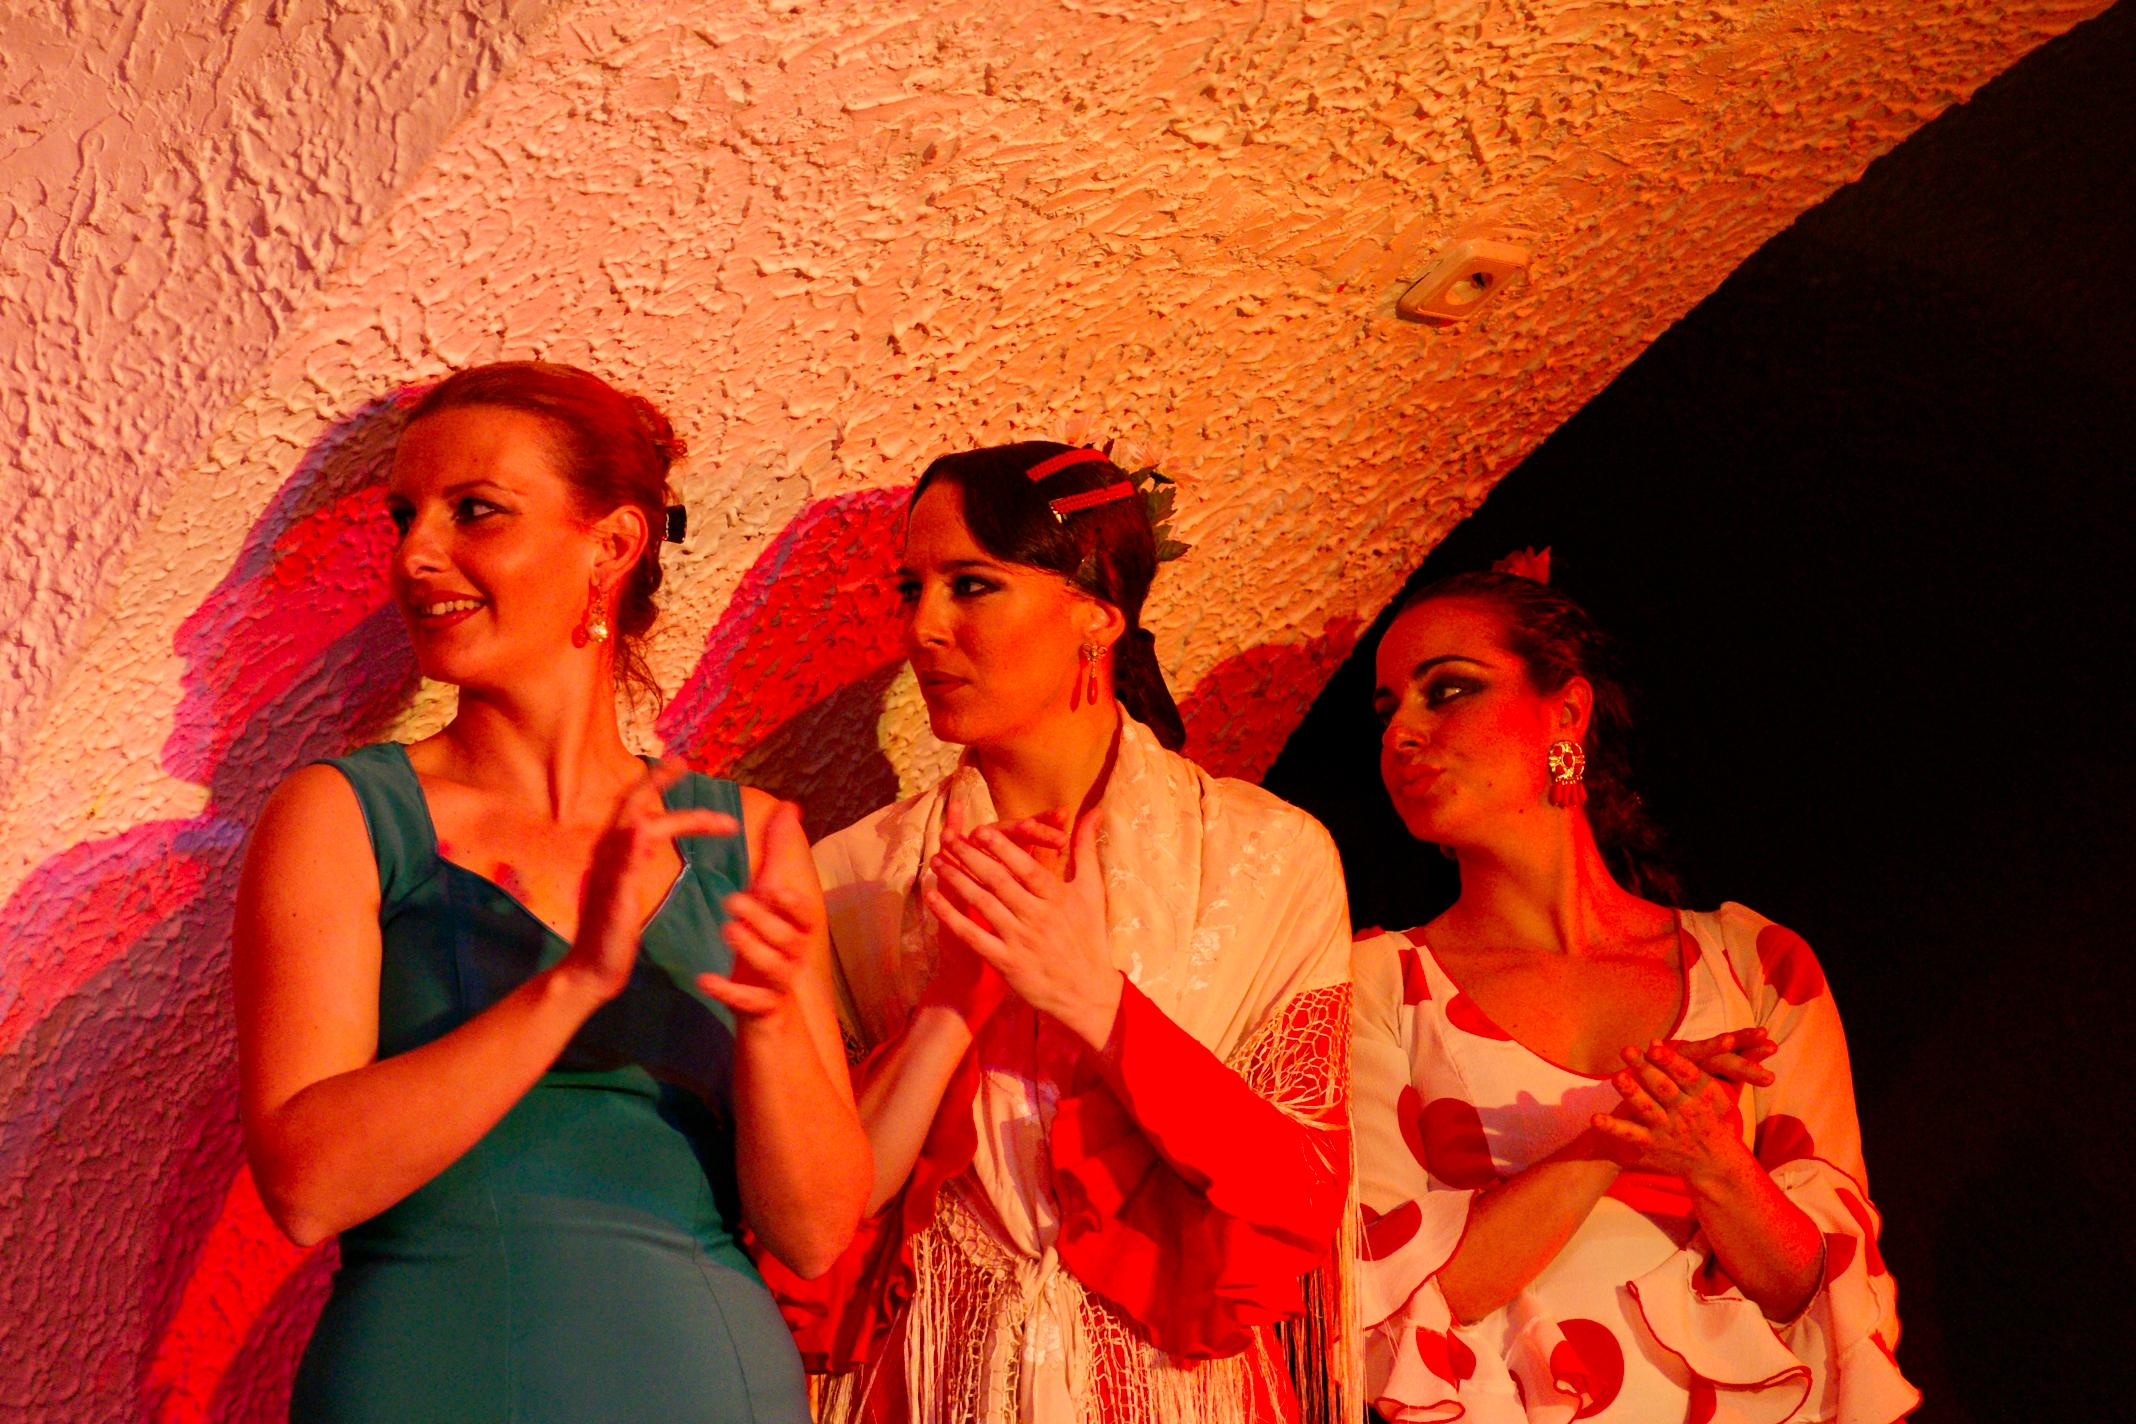 'SLO FLAMENCO' CON ANGELITA MONTOYA, LUCA 'LA PIONA', JESS FERNNDEZ Y DAVID CERREDUELA